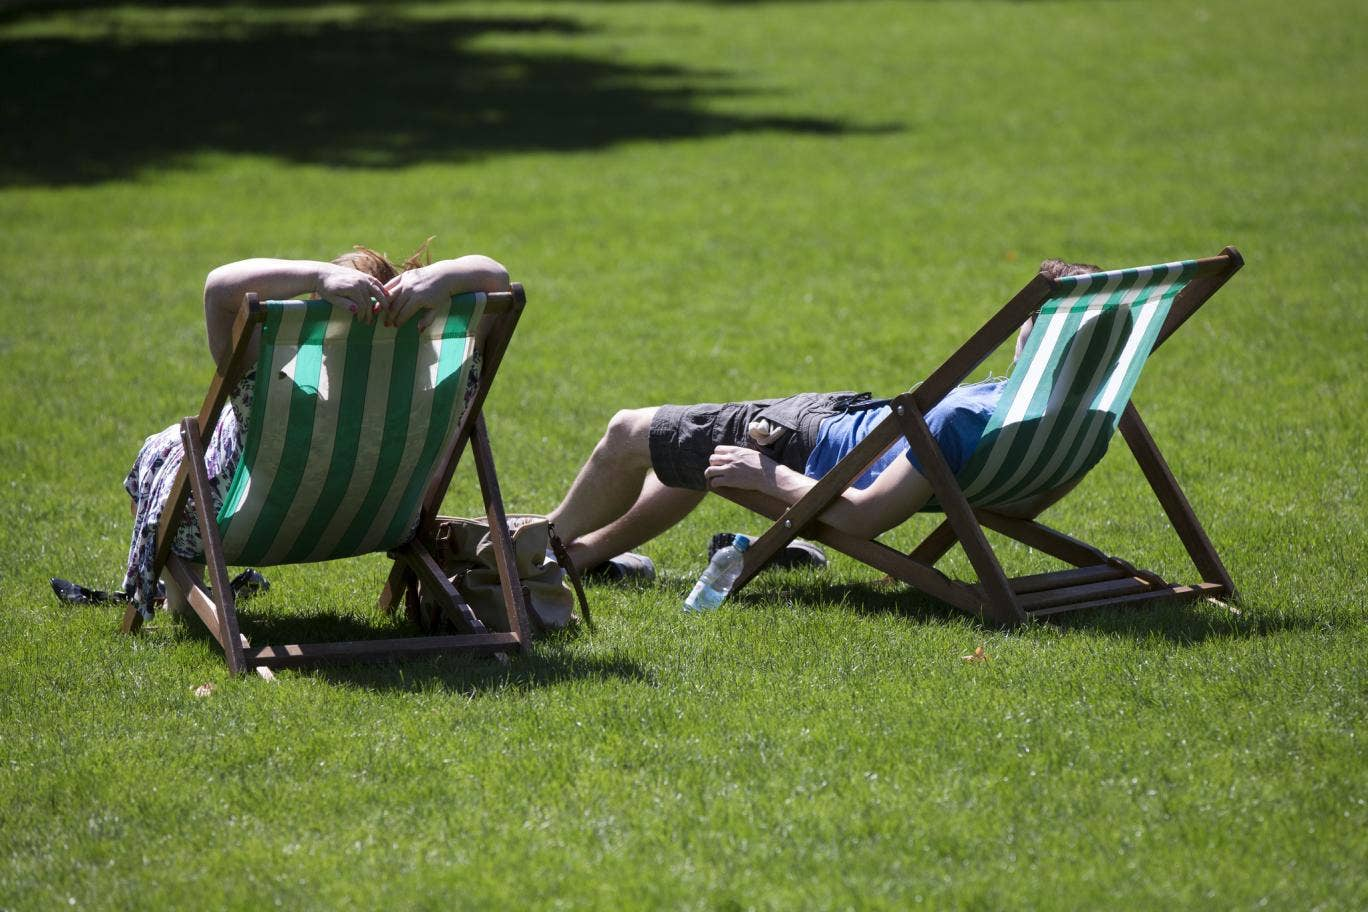 Forecasters have said that it could creep up to 30 degrees this week